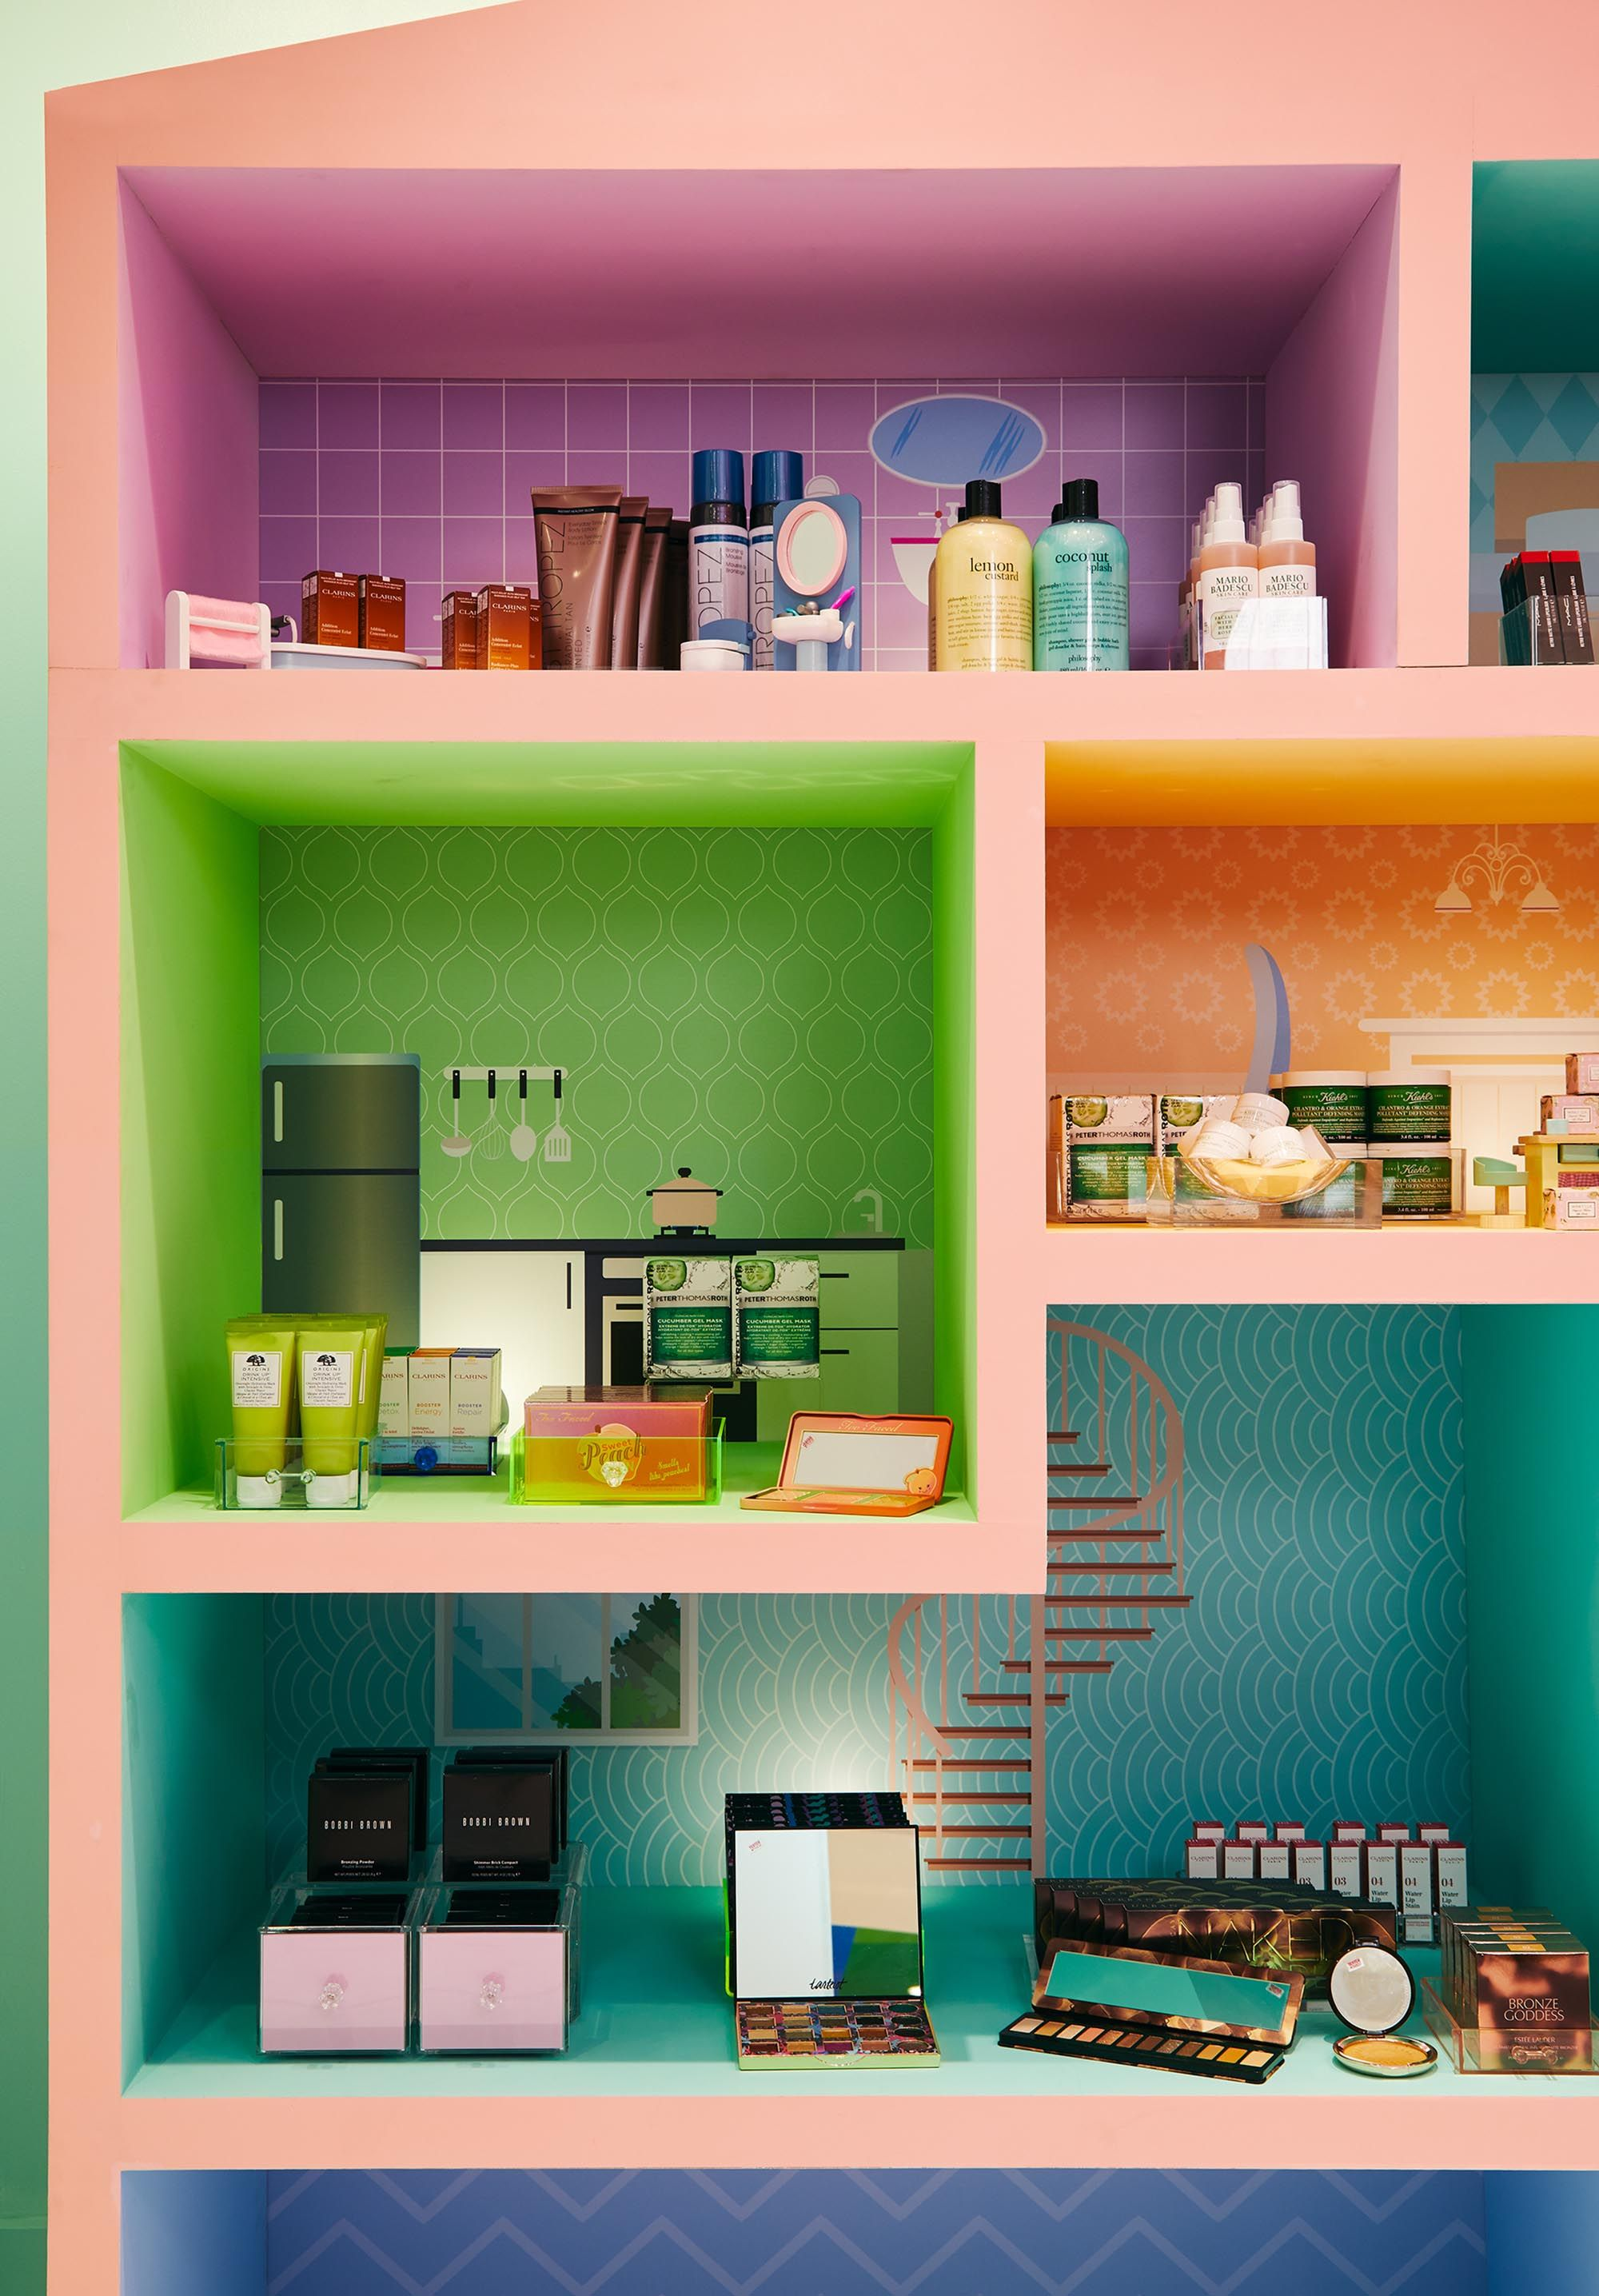 Custom shelving styled with products and accessories